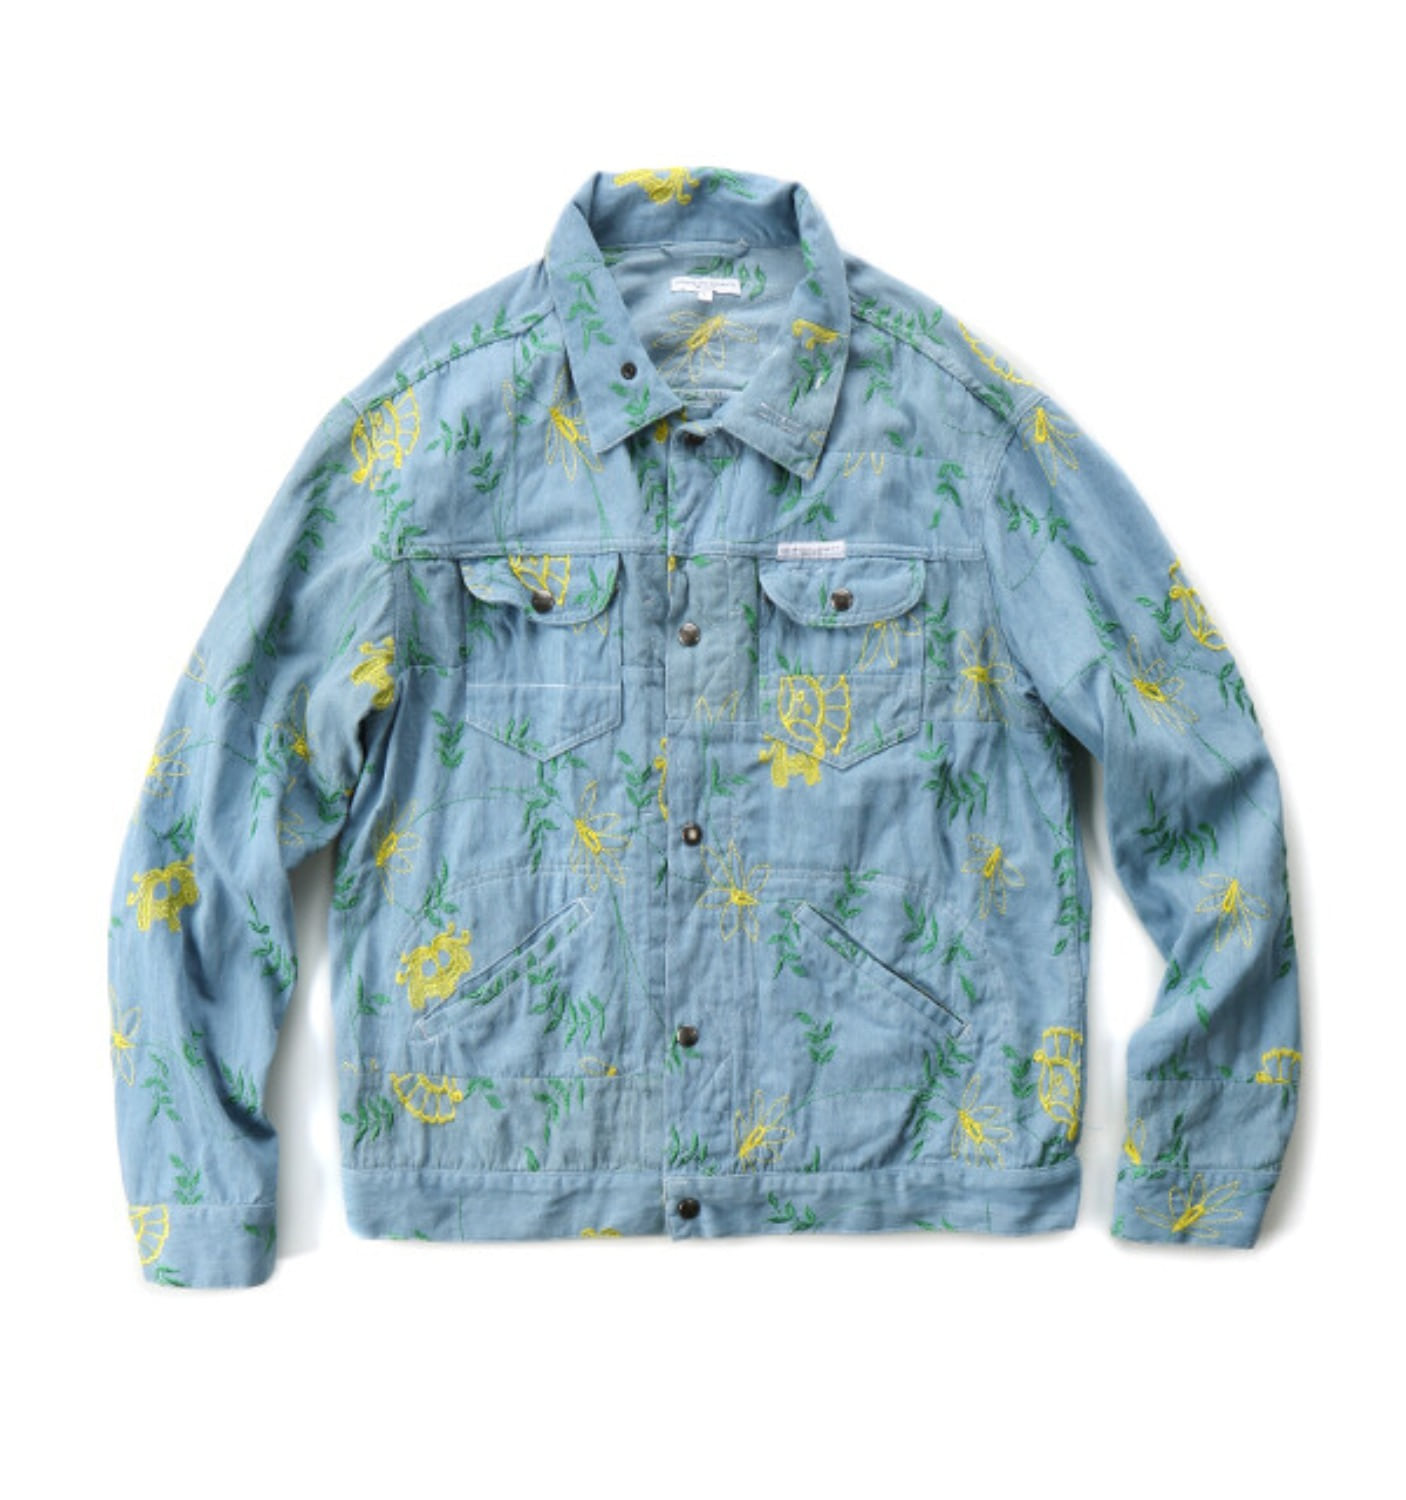 TRUCKER JKT LT.BLUE DENIM FLORAL EMBROIDERY